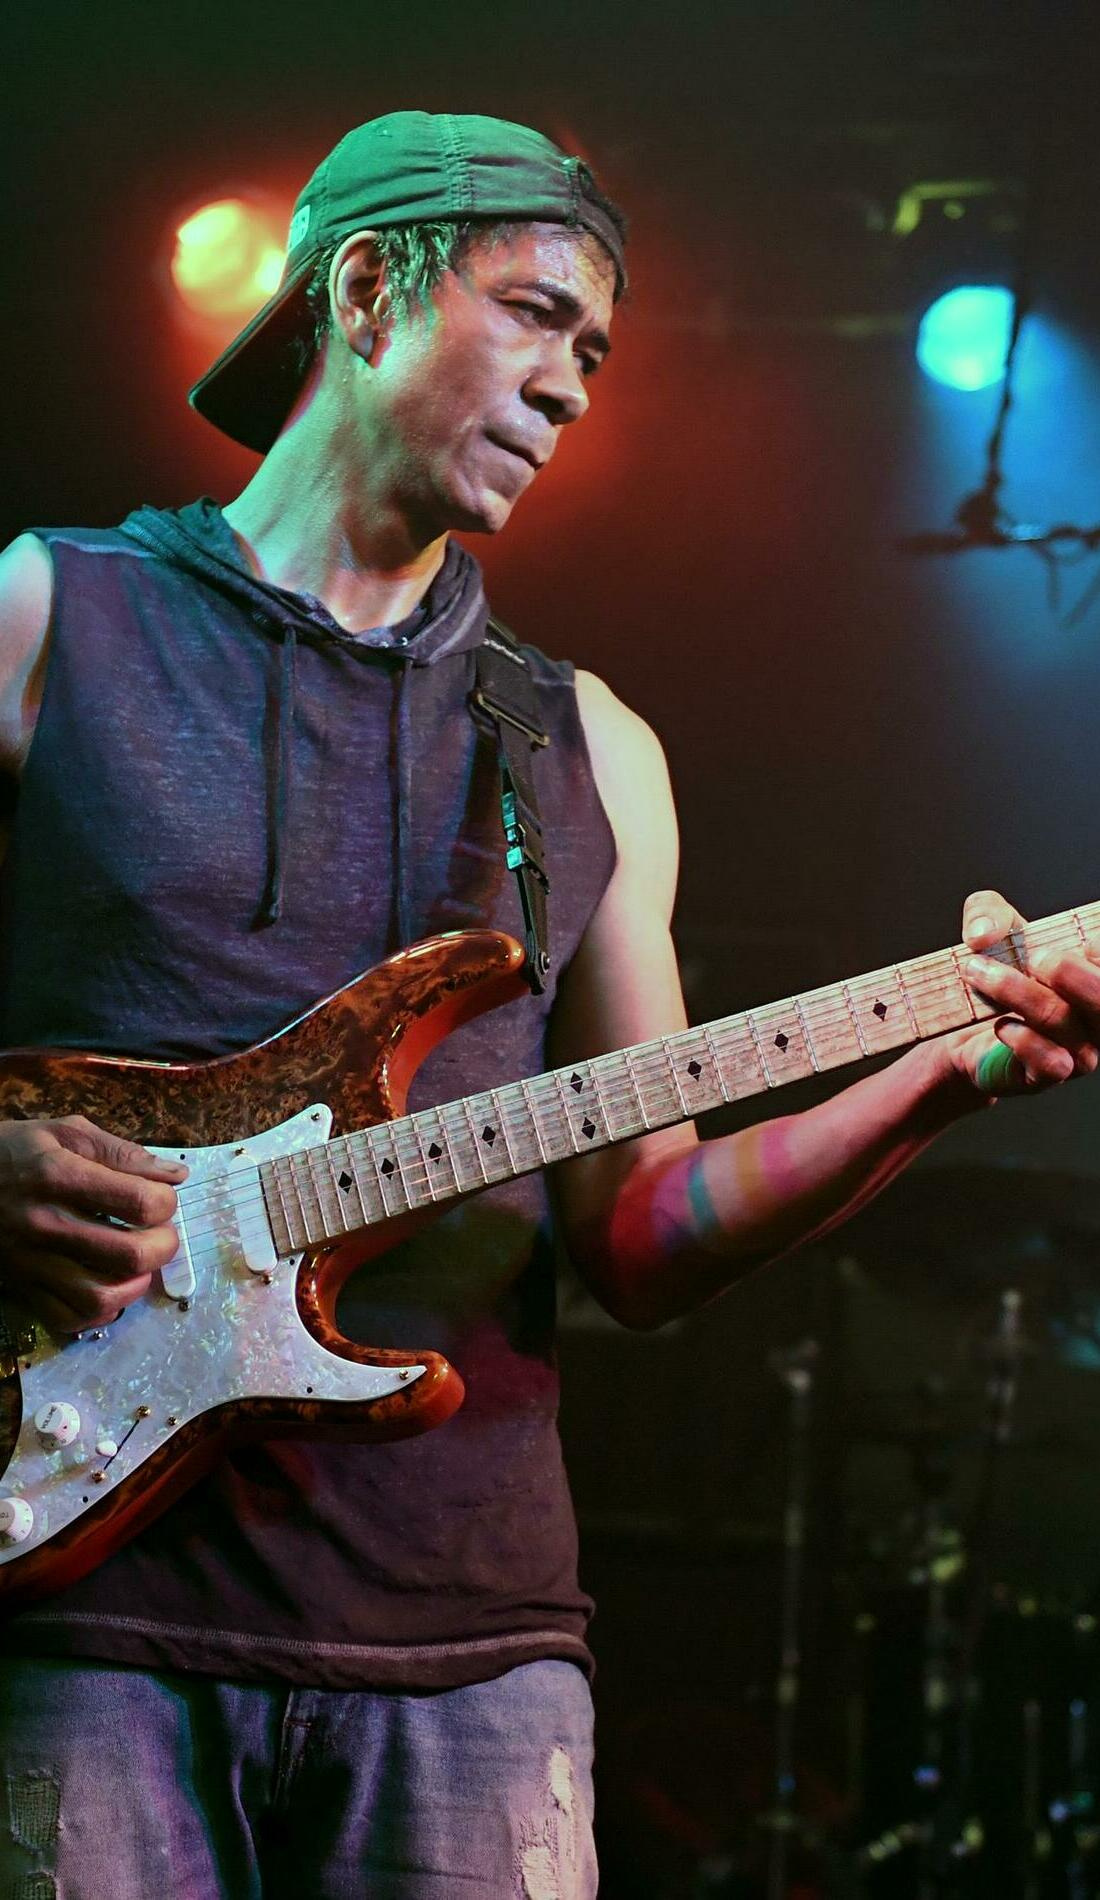 A Greg Howe live event